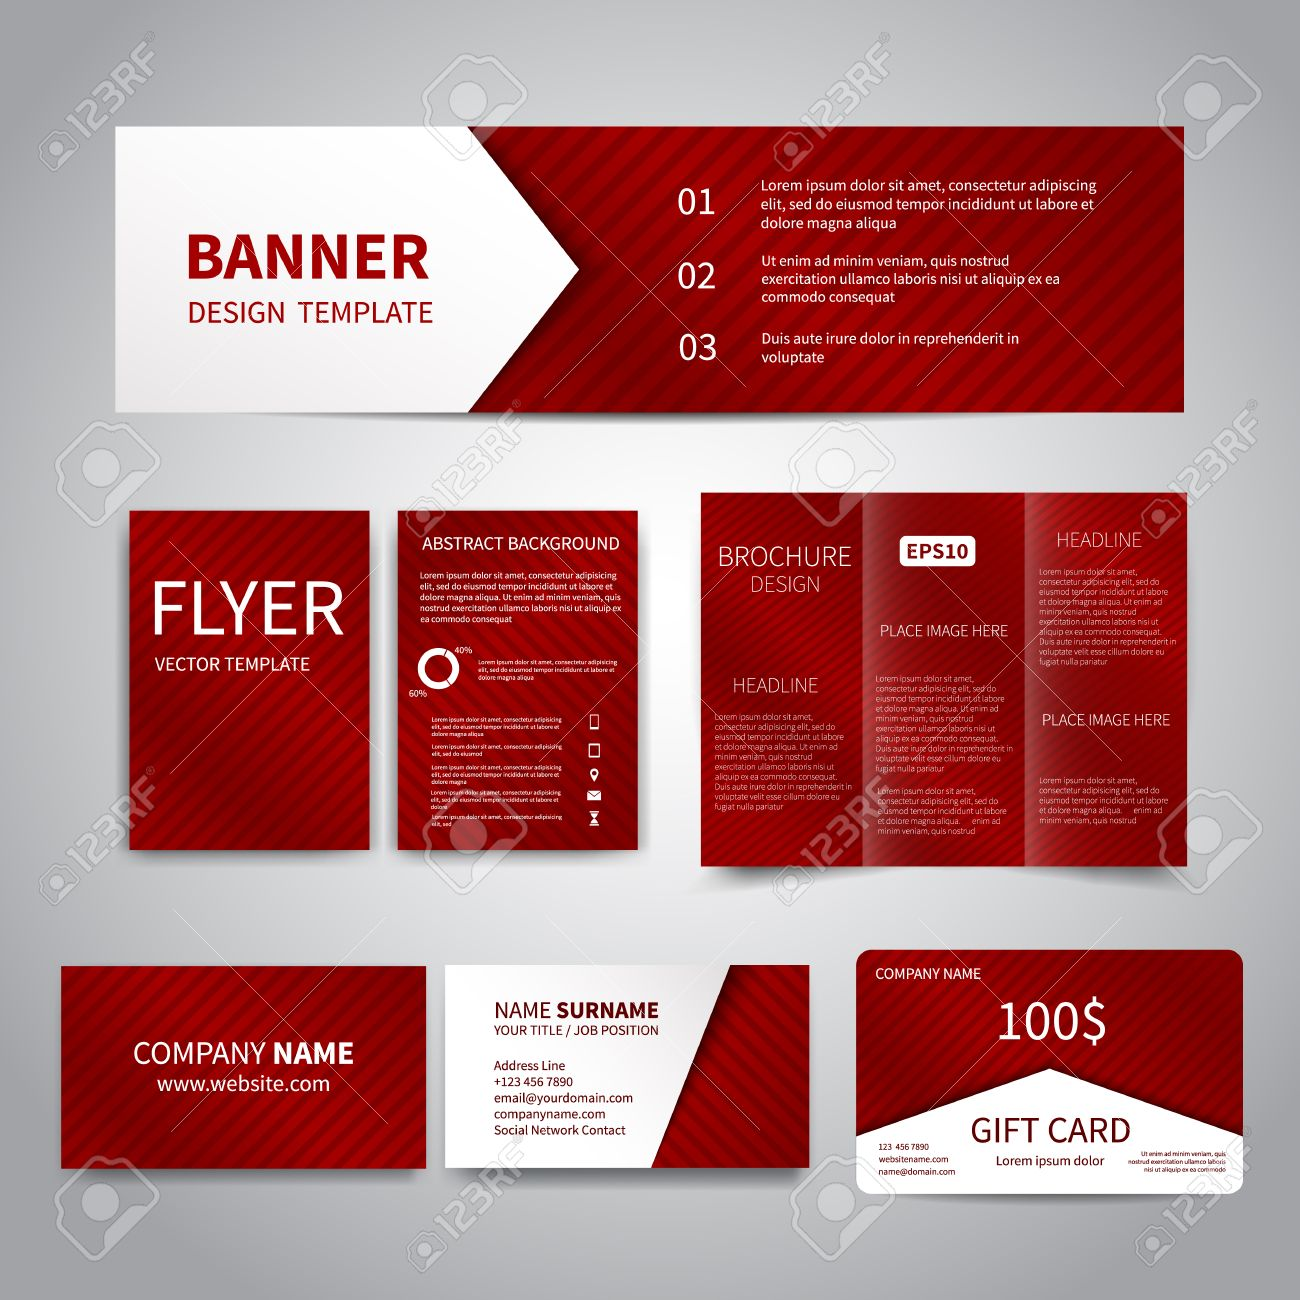 Banner flyers brochure business cards gift card design banner flyers brochure business cards gift card design templates set with red colourmoves